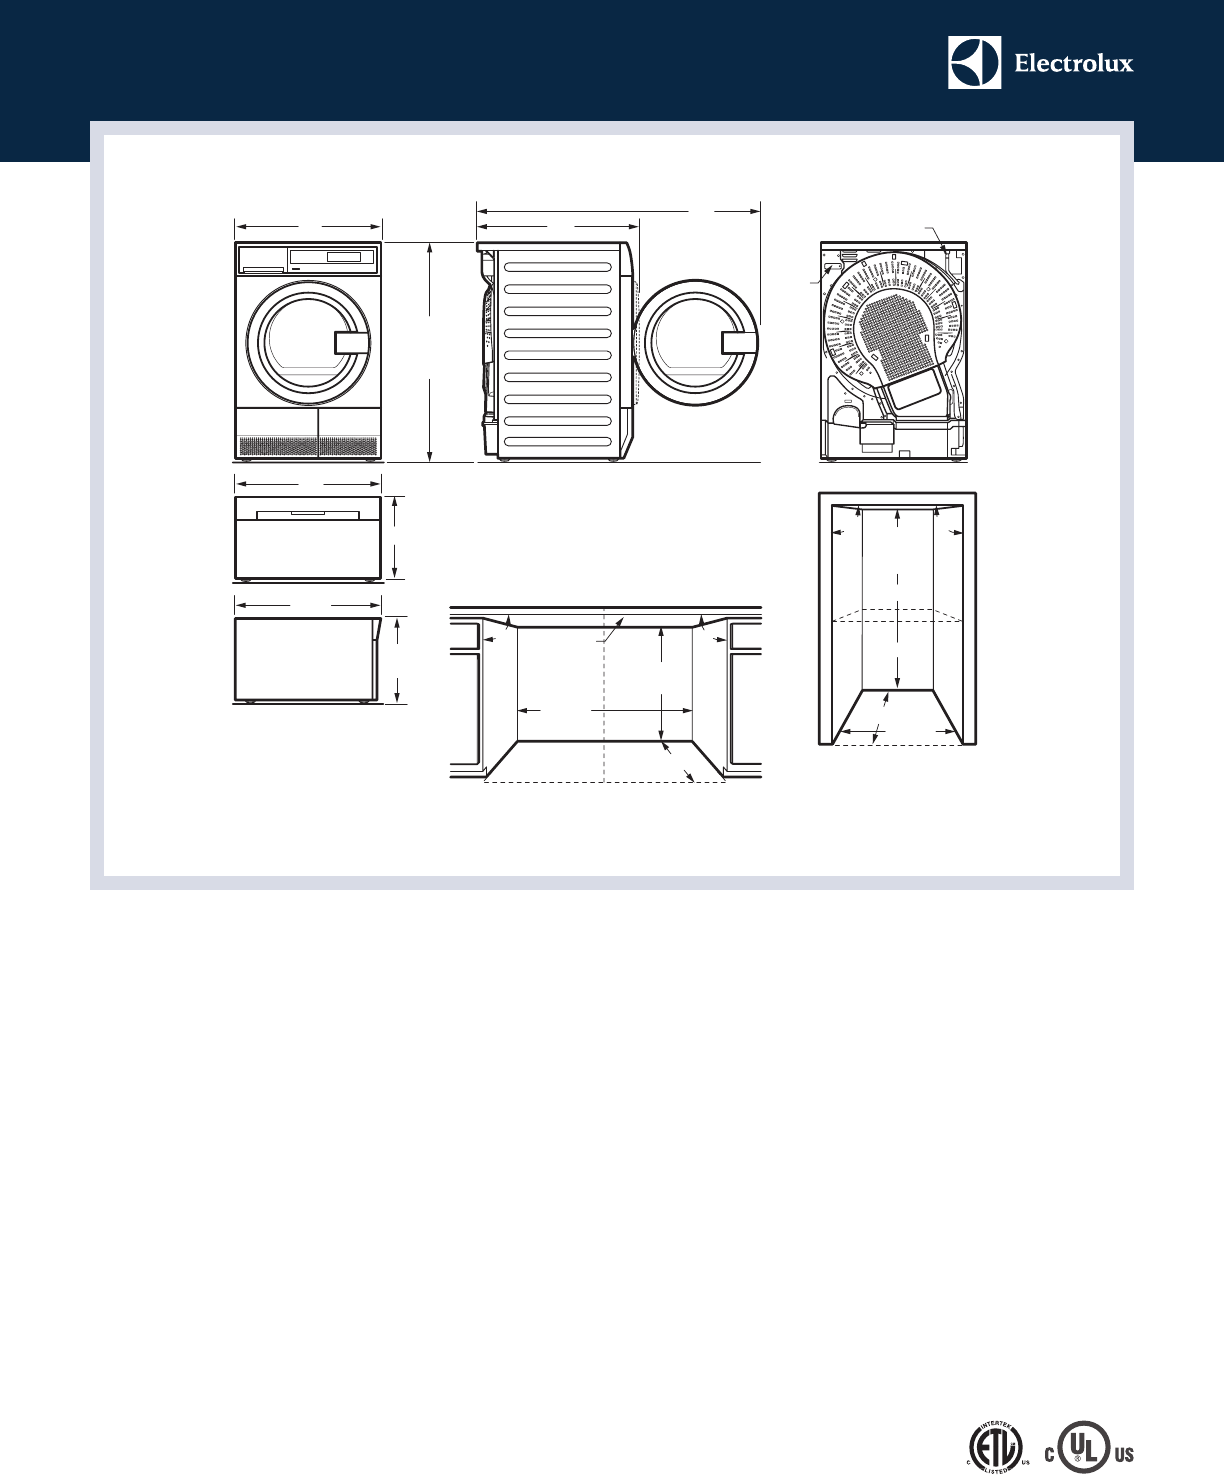 page 3 of electrolux clothes dryer eied200qsw user guide rh laundry manualsonline com Manuals in PDF User Manual Template